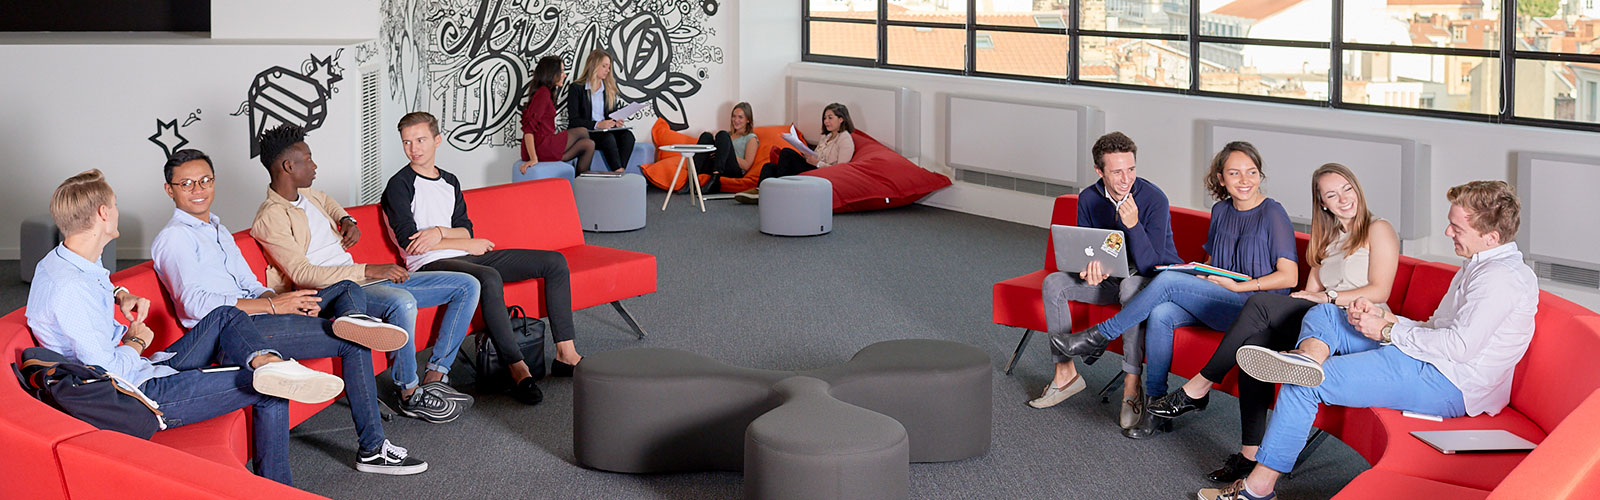 INSEEC student lounge, Lyon France